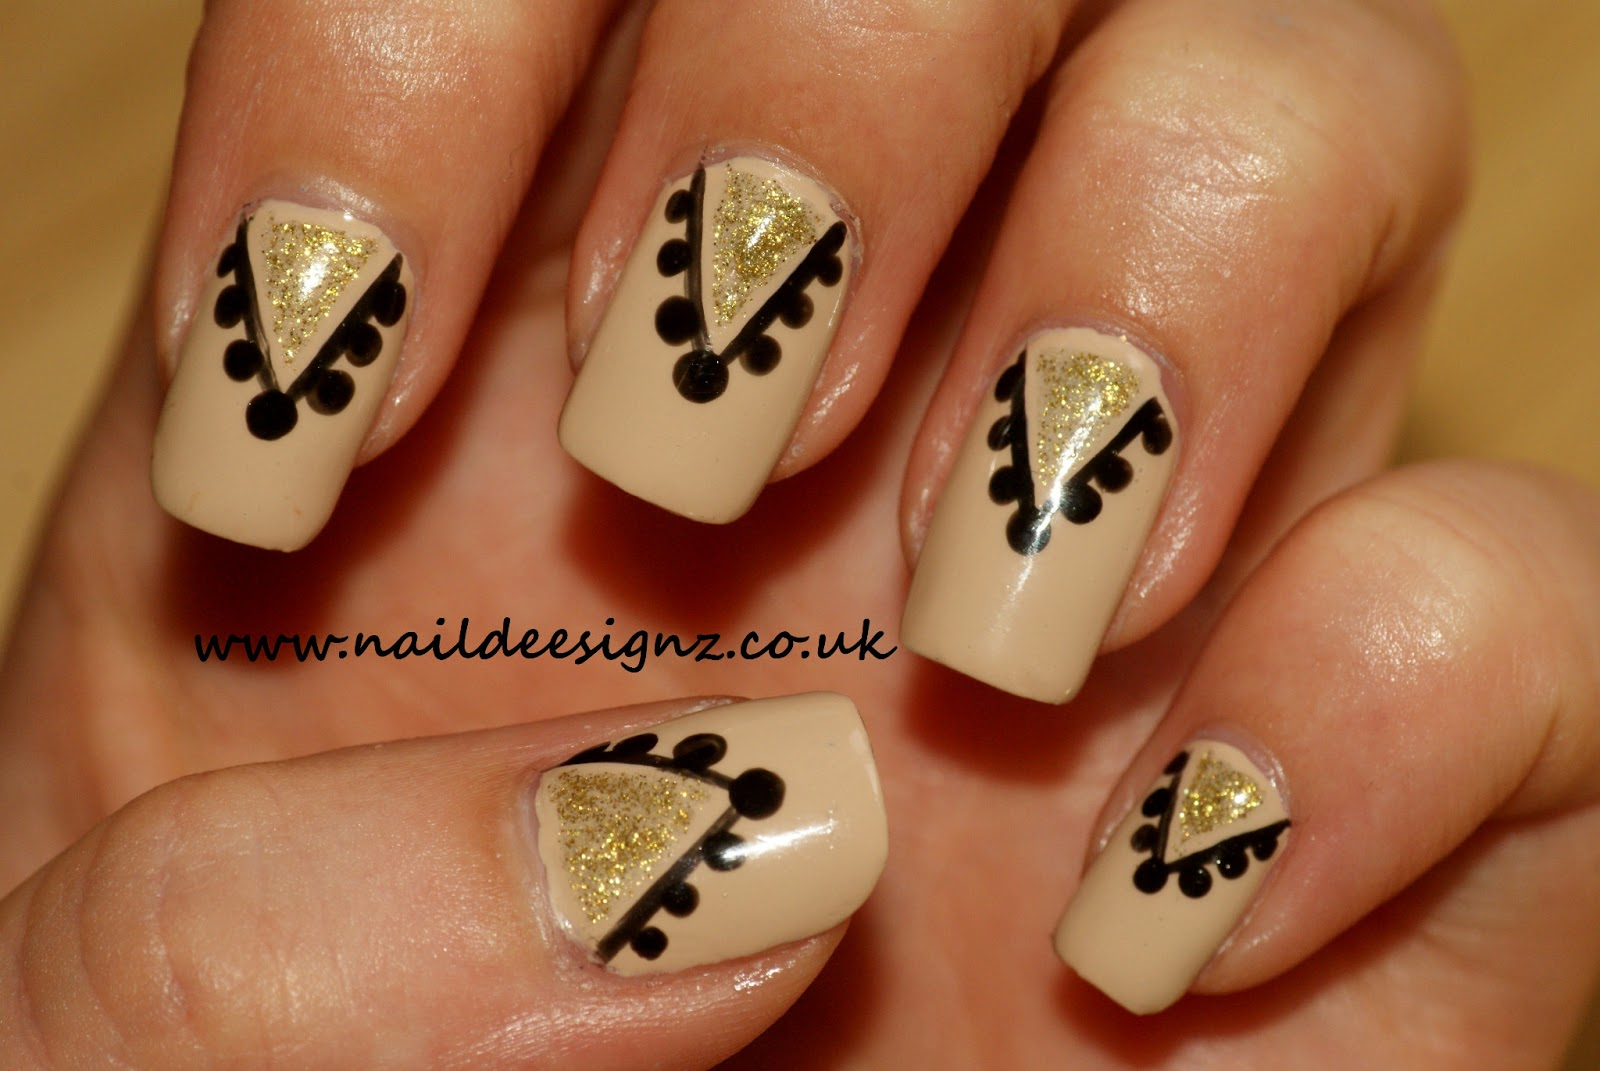 Christines nail designs easy nail designs for short nails christines nail designs easy nail designs for short nails aztec nail art prinsesfo Images